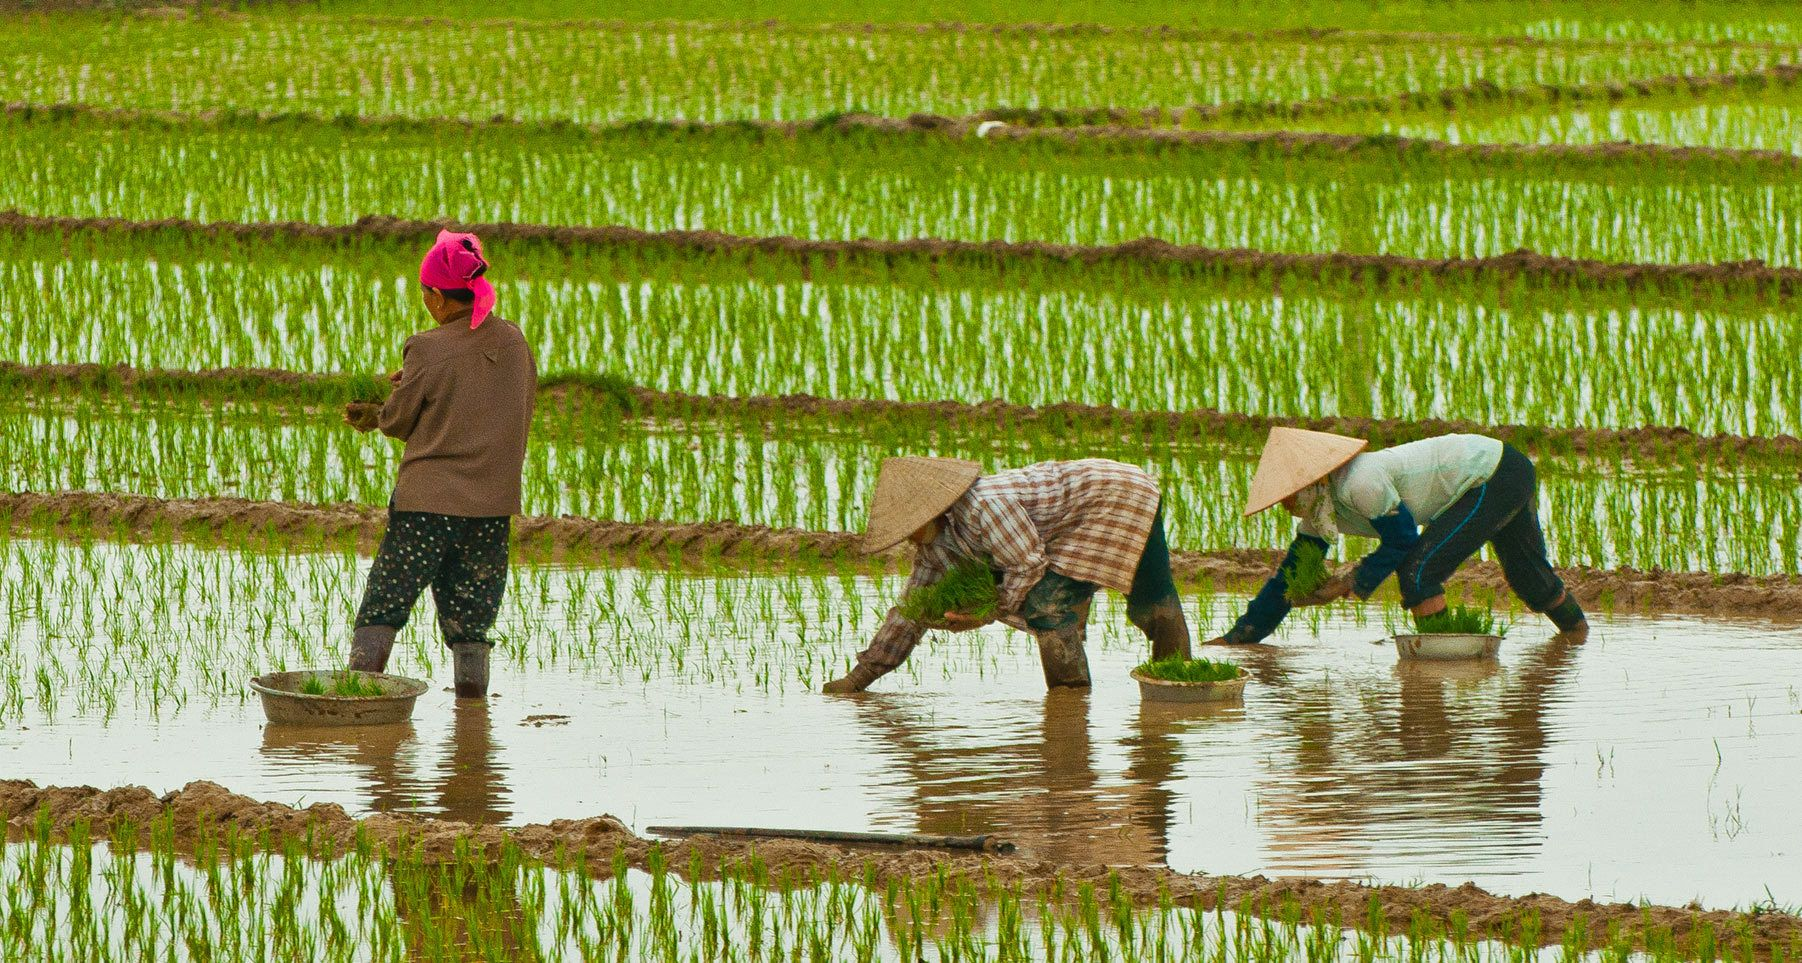 Women planting Rice, Central Vietnam